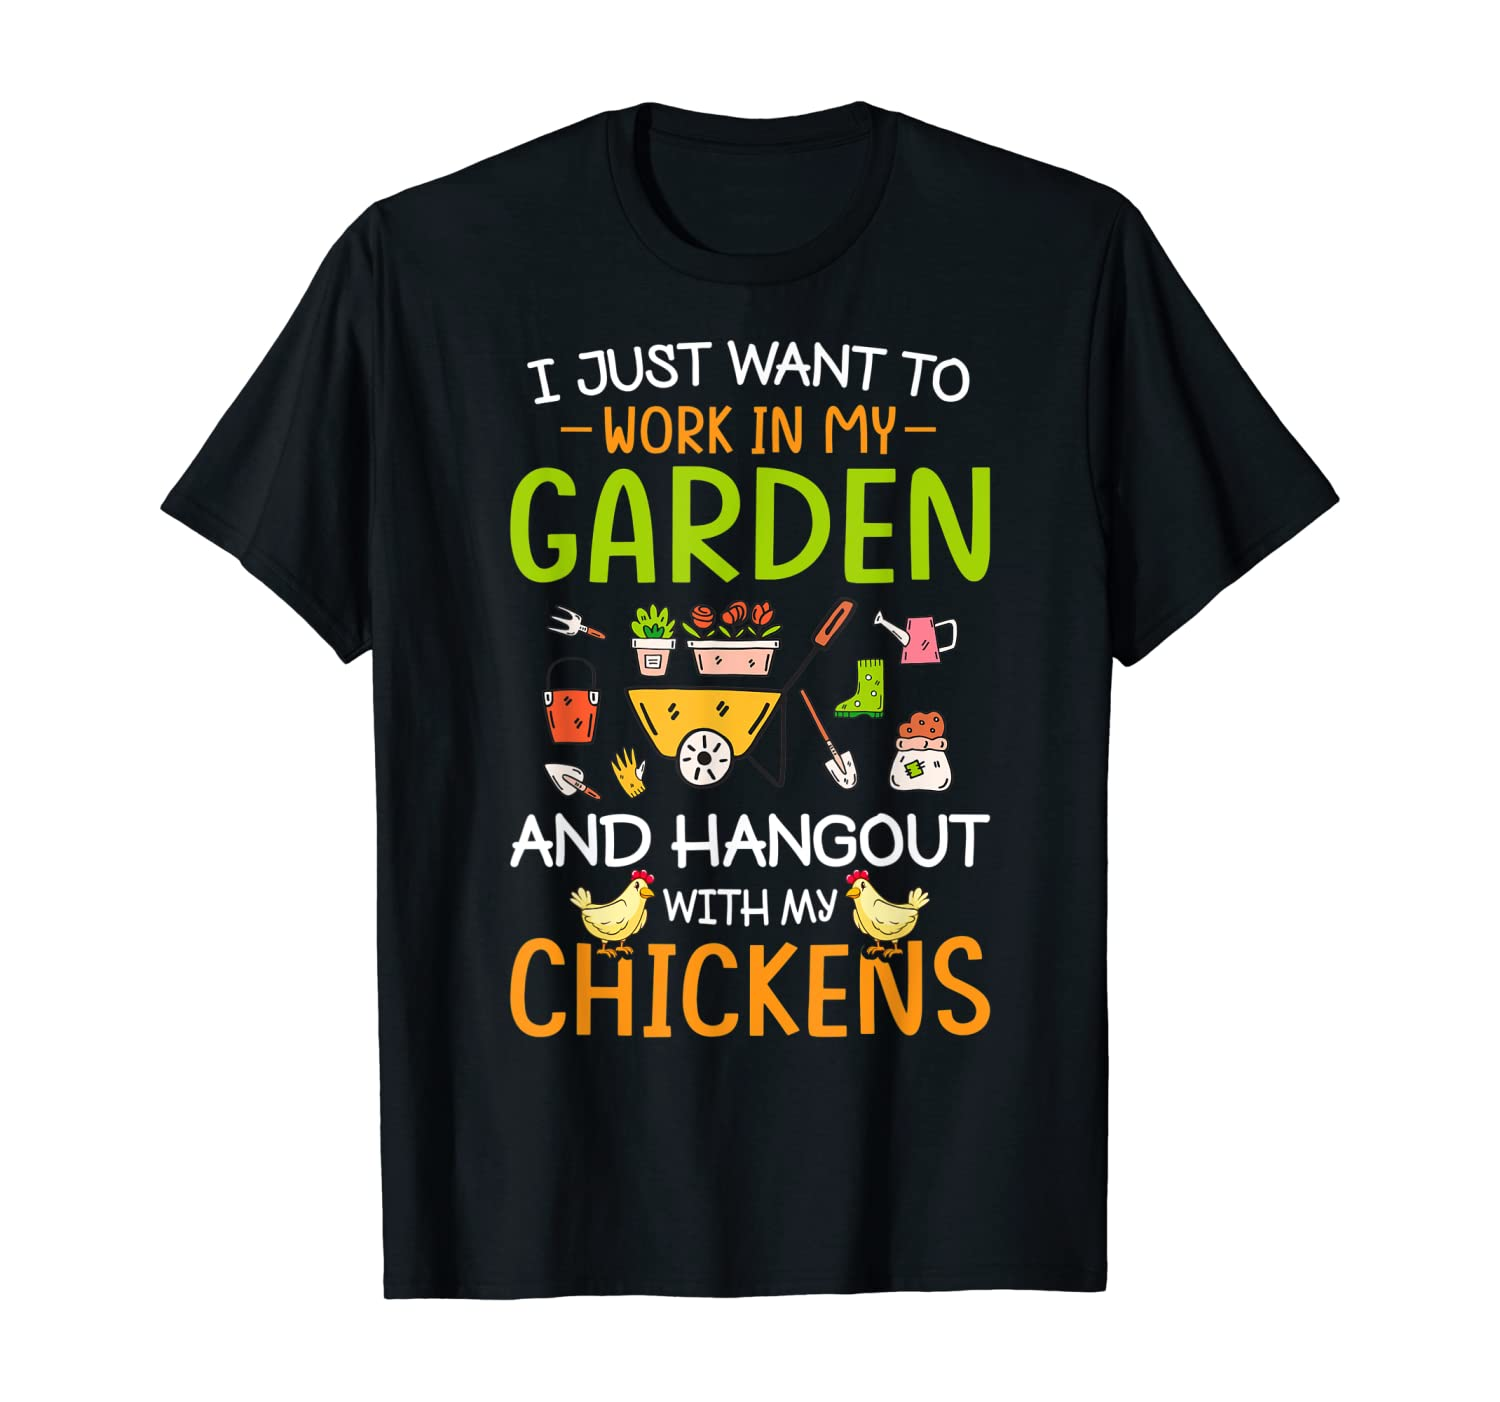 I Just Want To Work In My Garden And Hangout With Chickens T-Shirt